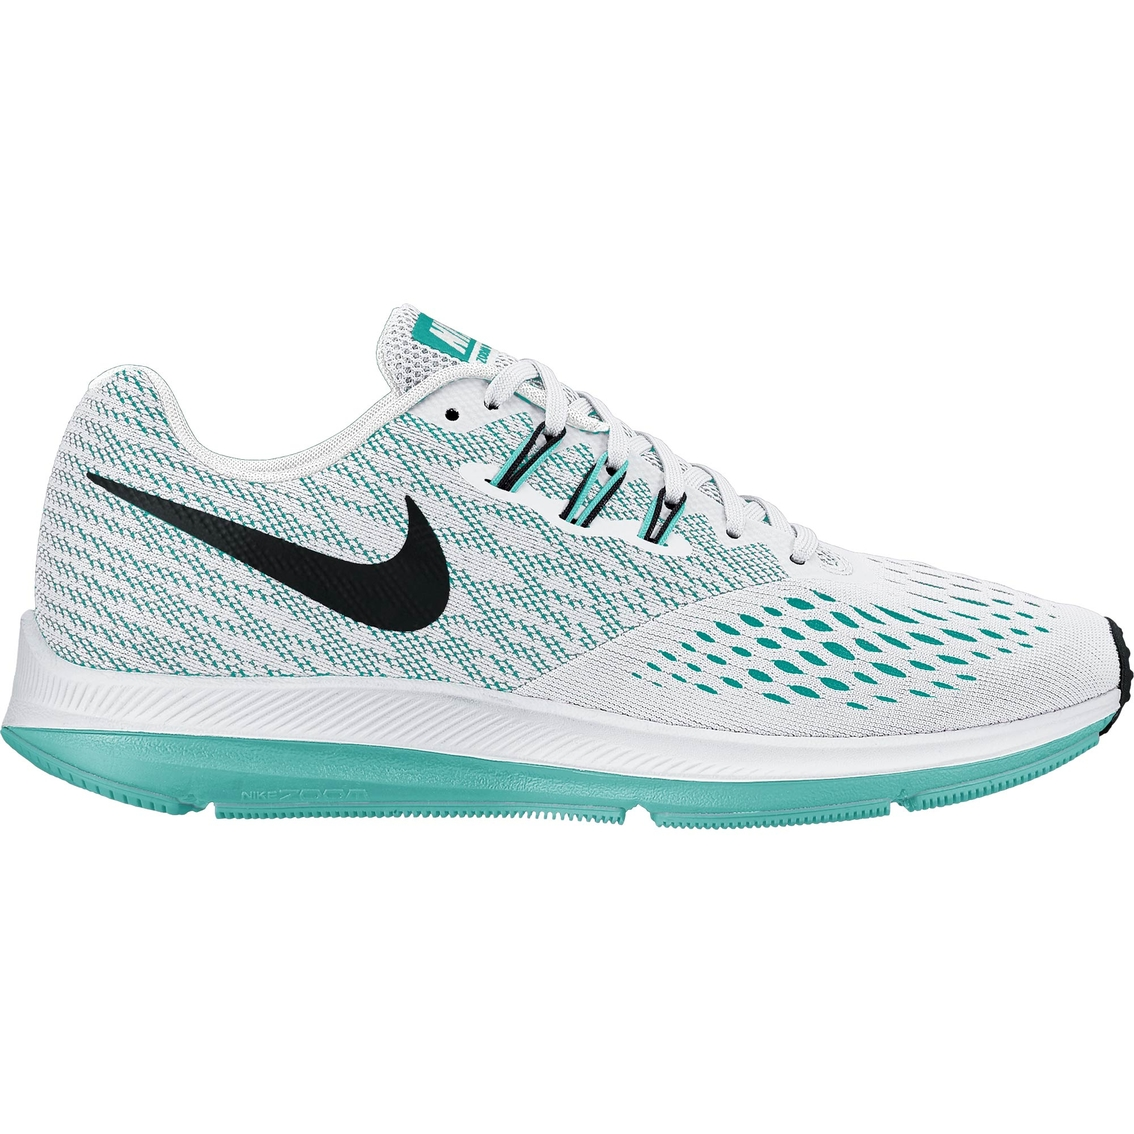 official photos a344b 7ba41 Nike Women's Air Zoom Winflo 4 Running Shoes | Running ...